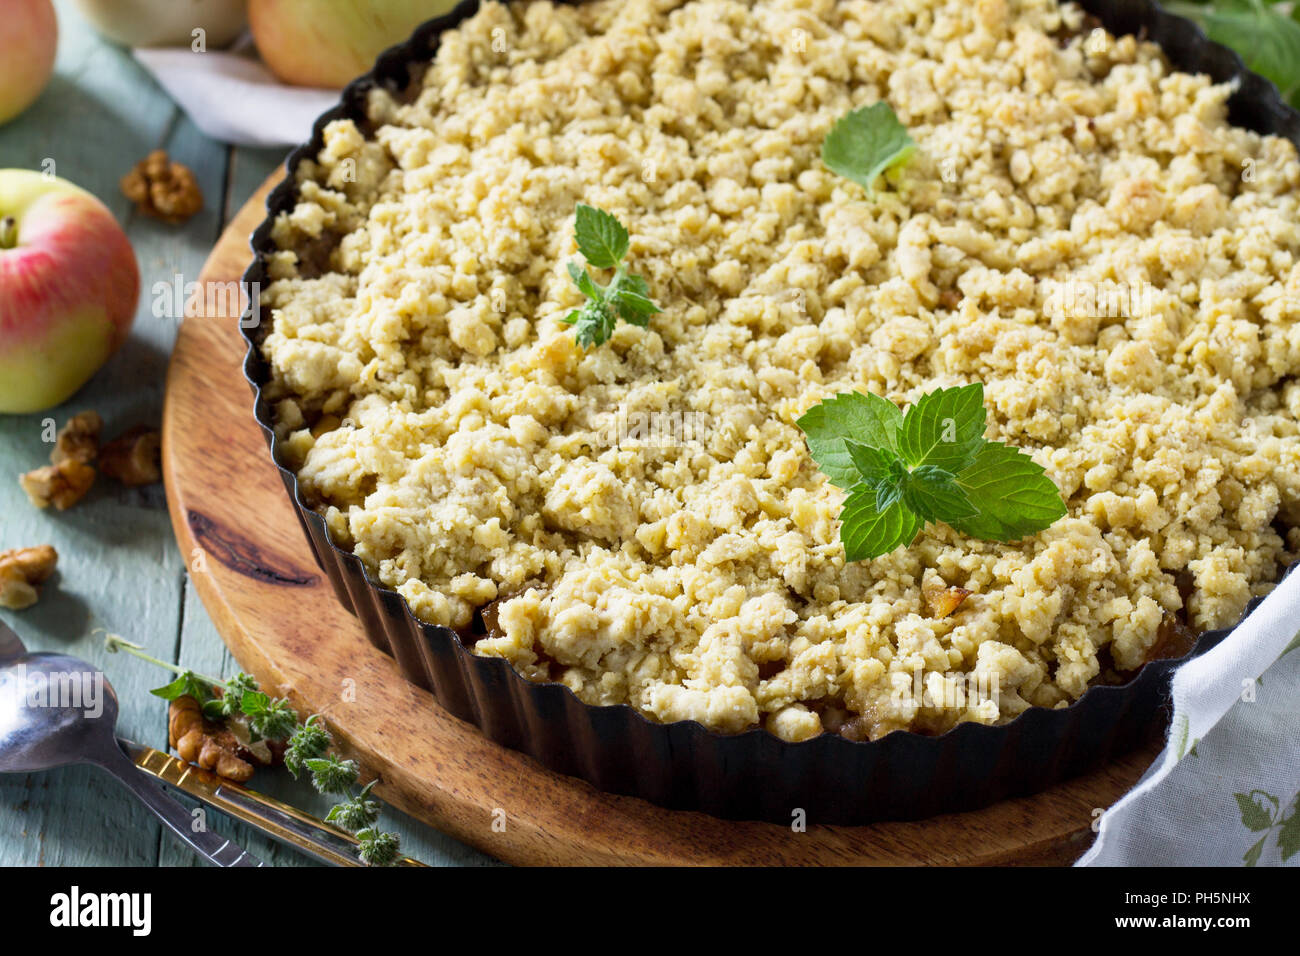 Traditional English cuisine. Apples crumble, crisp in baking dish on wooden table. - Stock Image